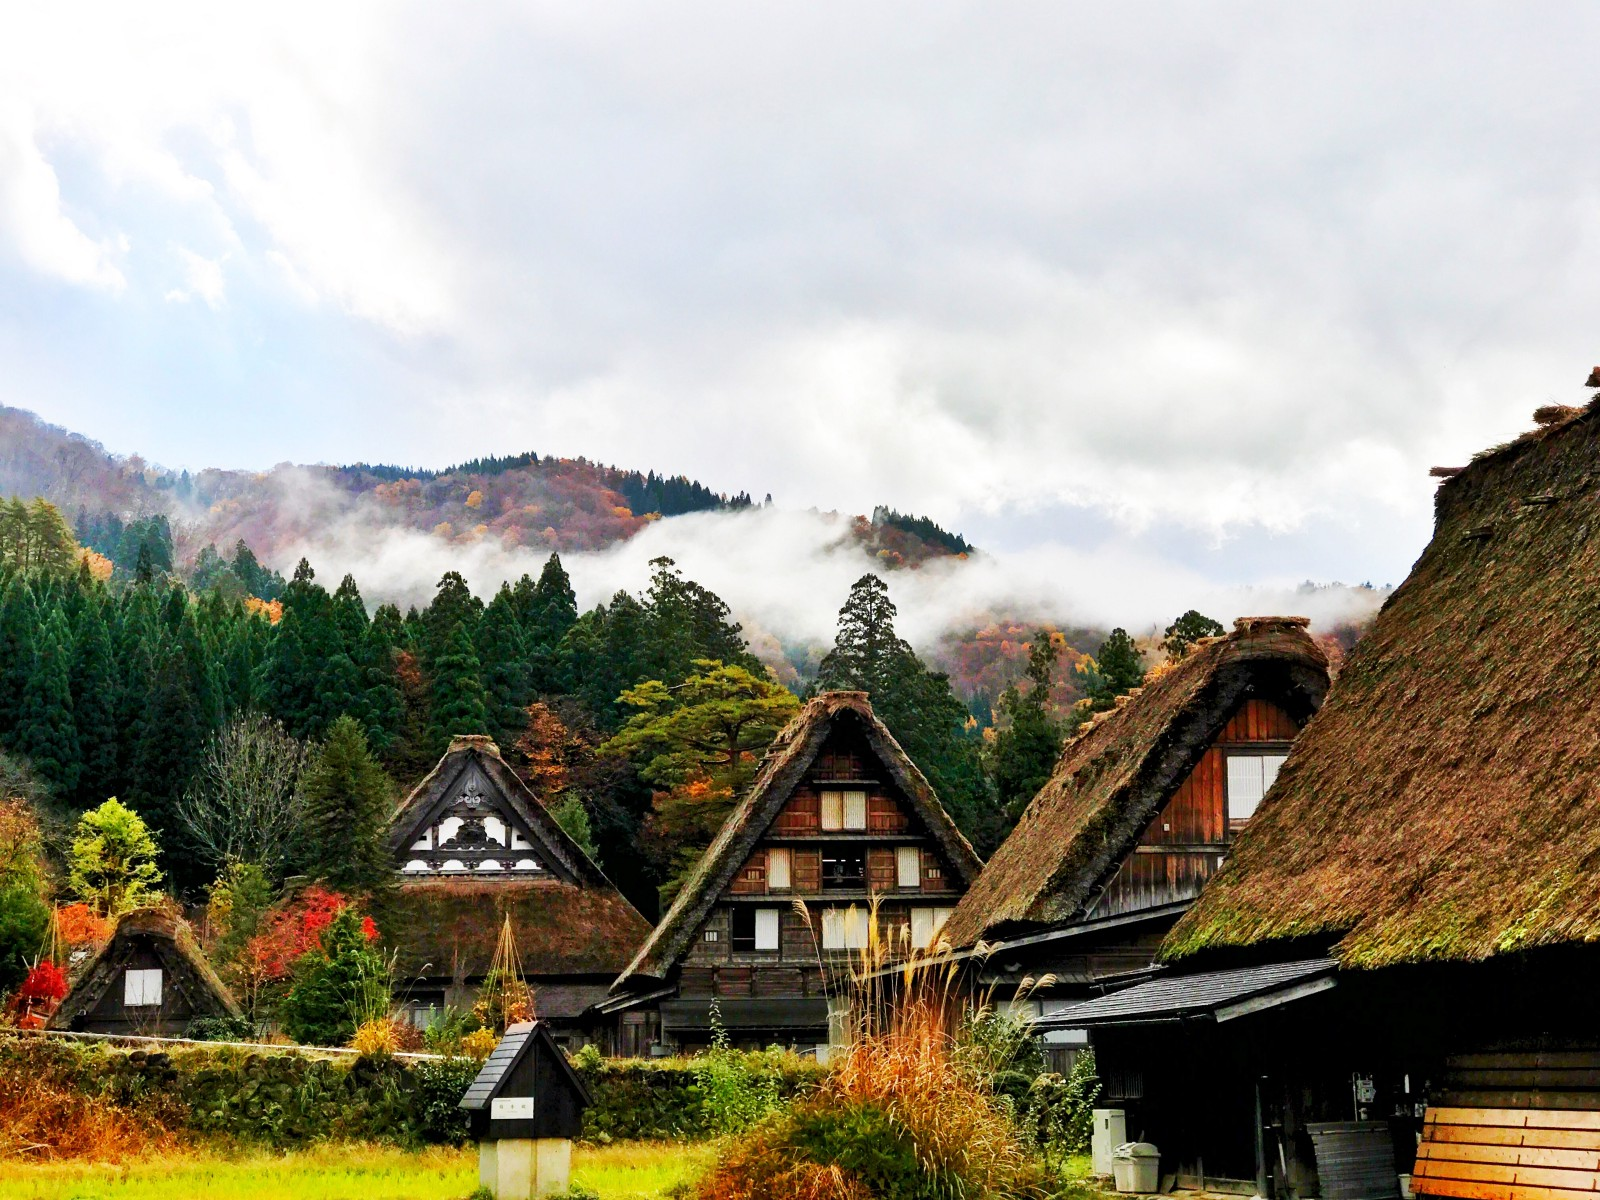 Shirakawago Village in autumn colour